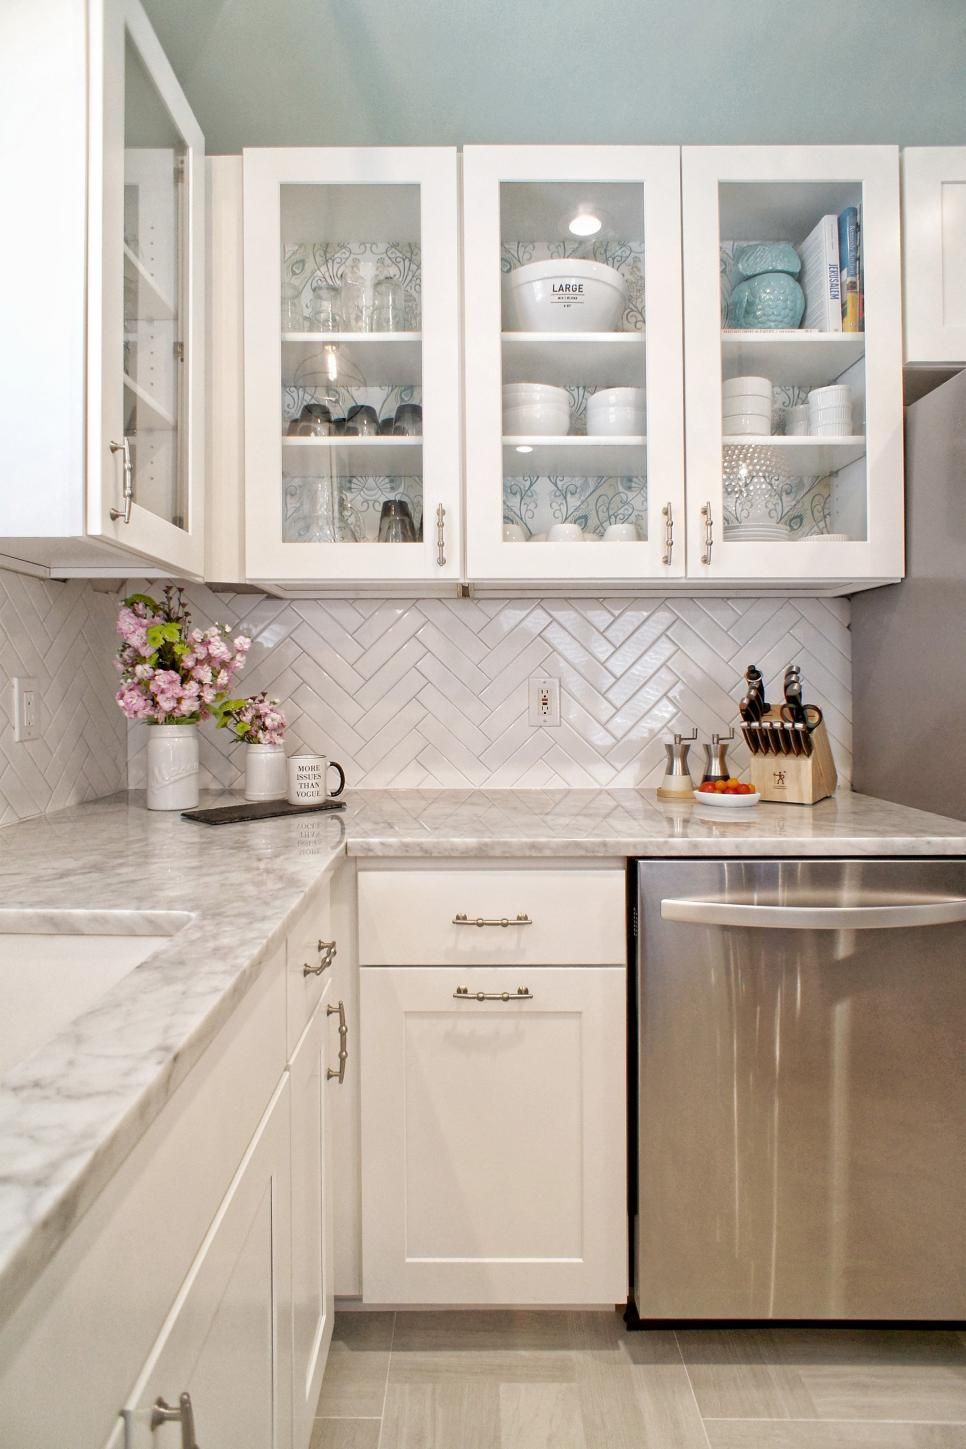 White Kitchen Countertops With White Cabinets our 25 most-pinned photos of 2016 | herringbone backsplash, shaker